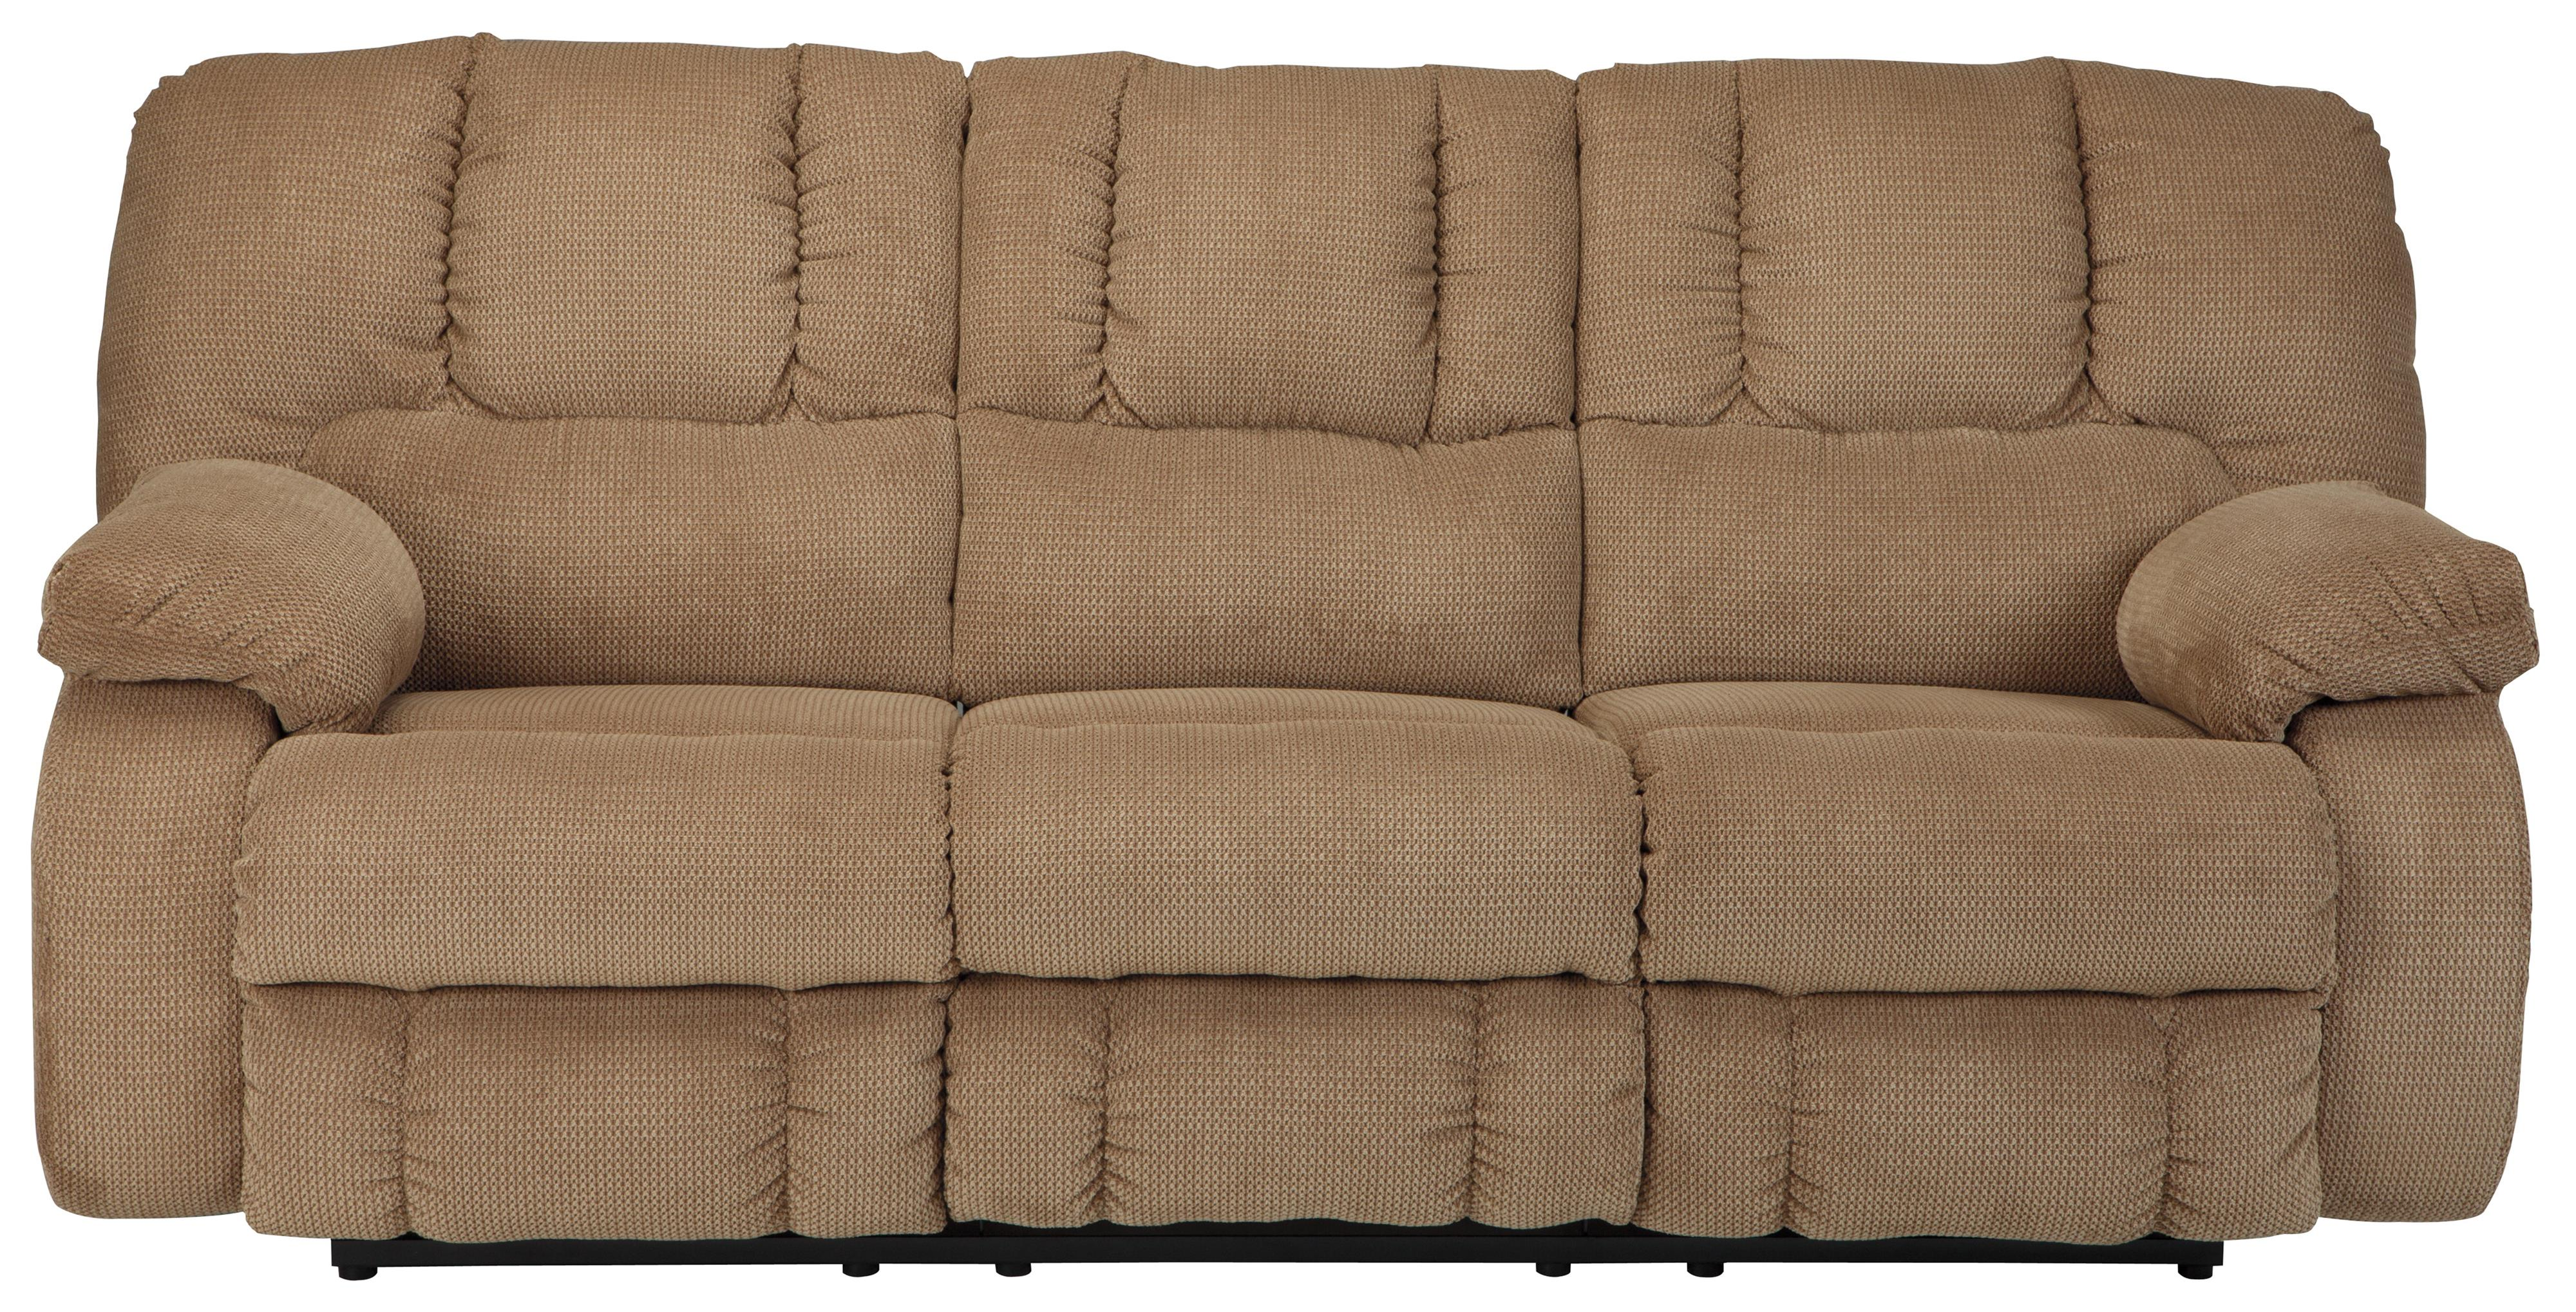 Benchcraft Roan Reclining Sofa - Item Number: 3860288